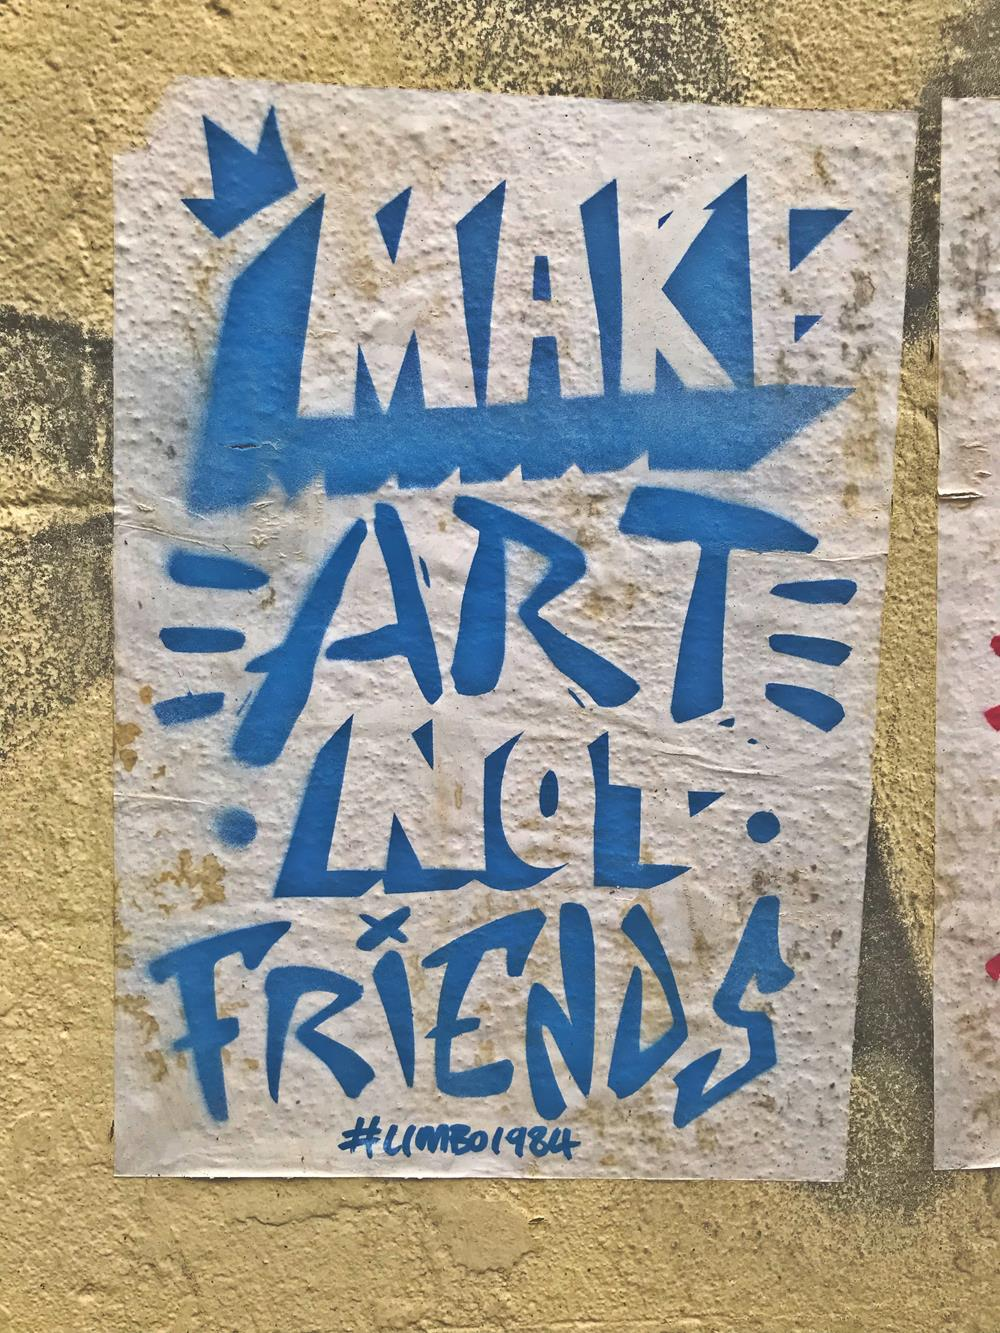 Make art not friends blue text on a white background paste-up